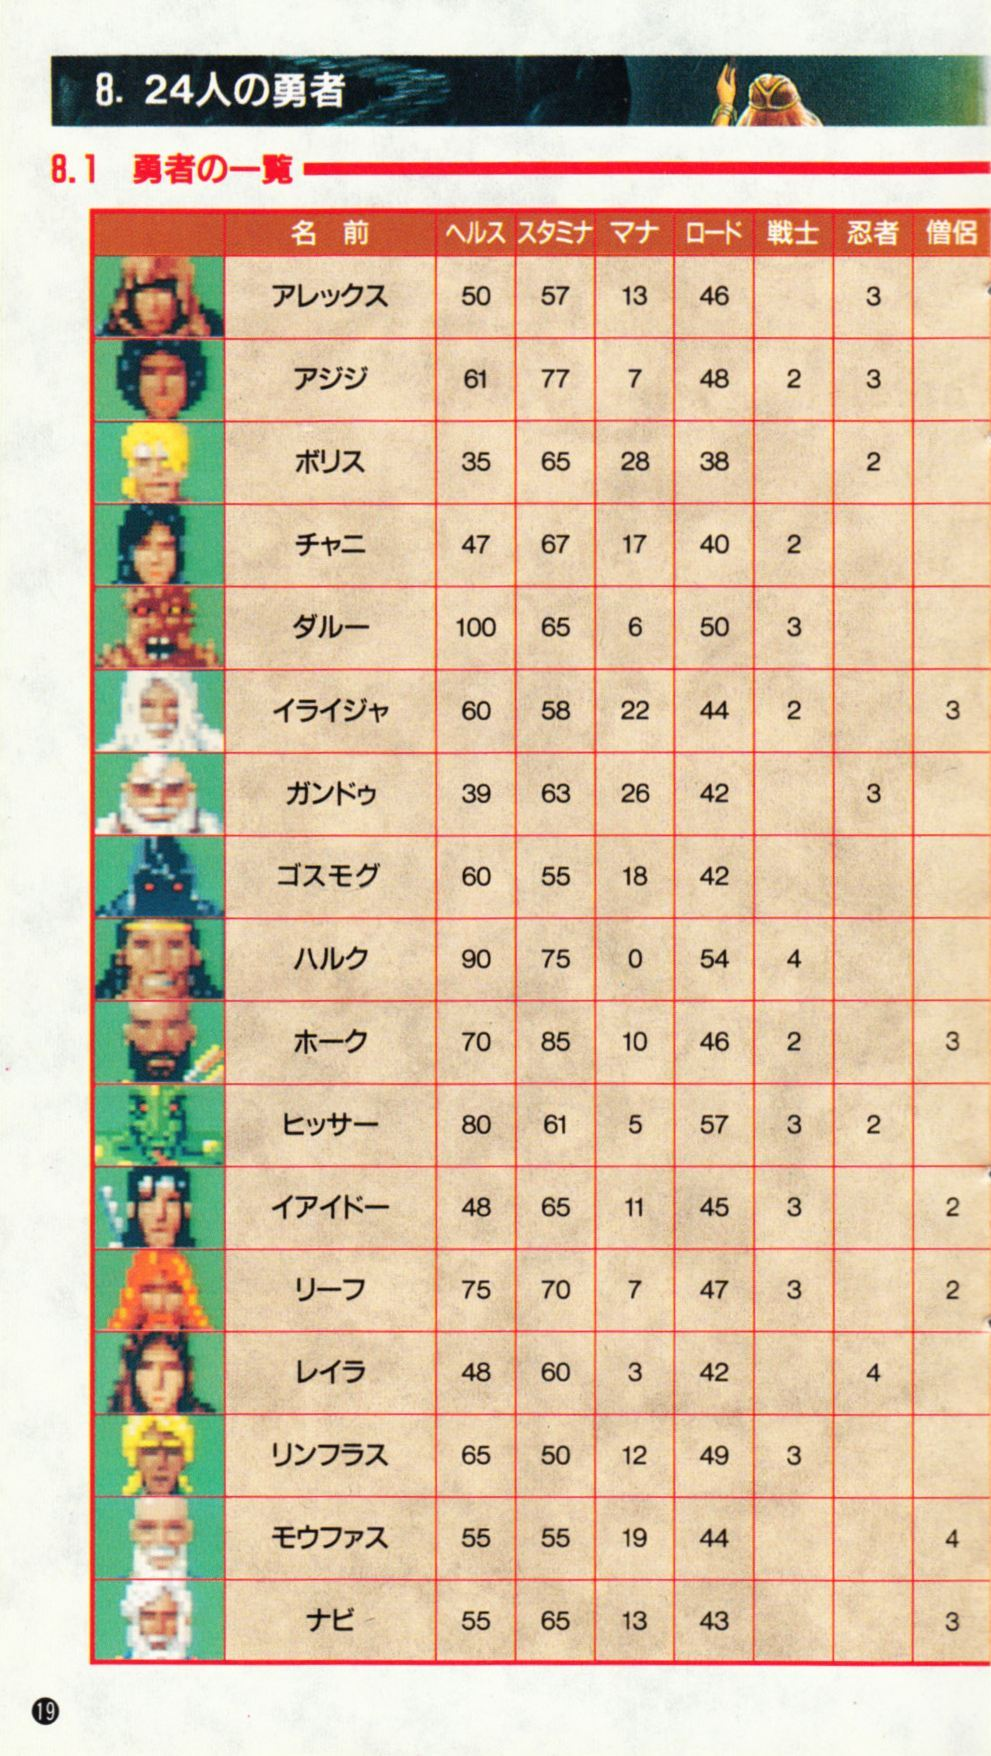 Game - Dungeon Master - JP - Super Famicom - Manual - Page 022 - Scan